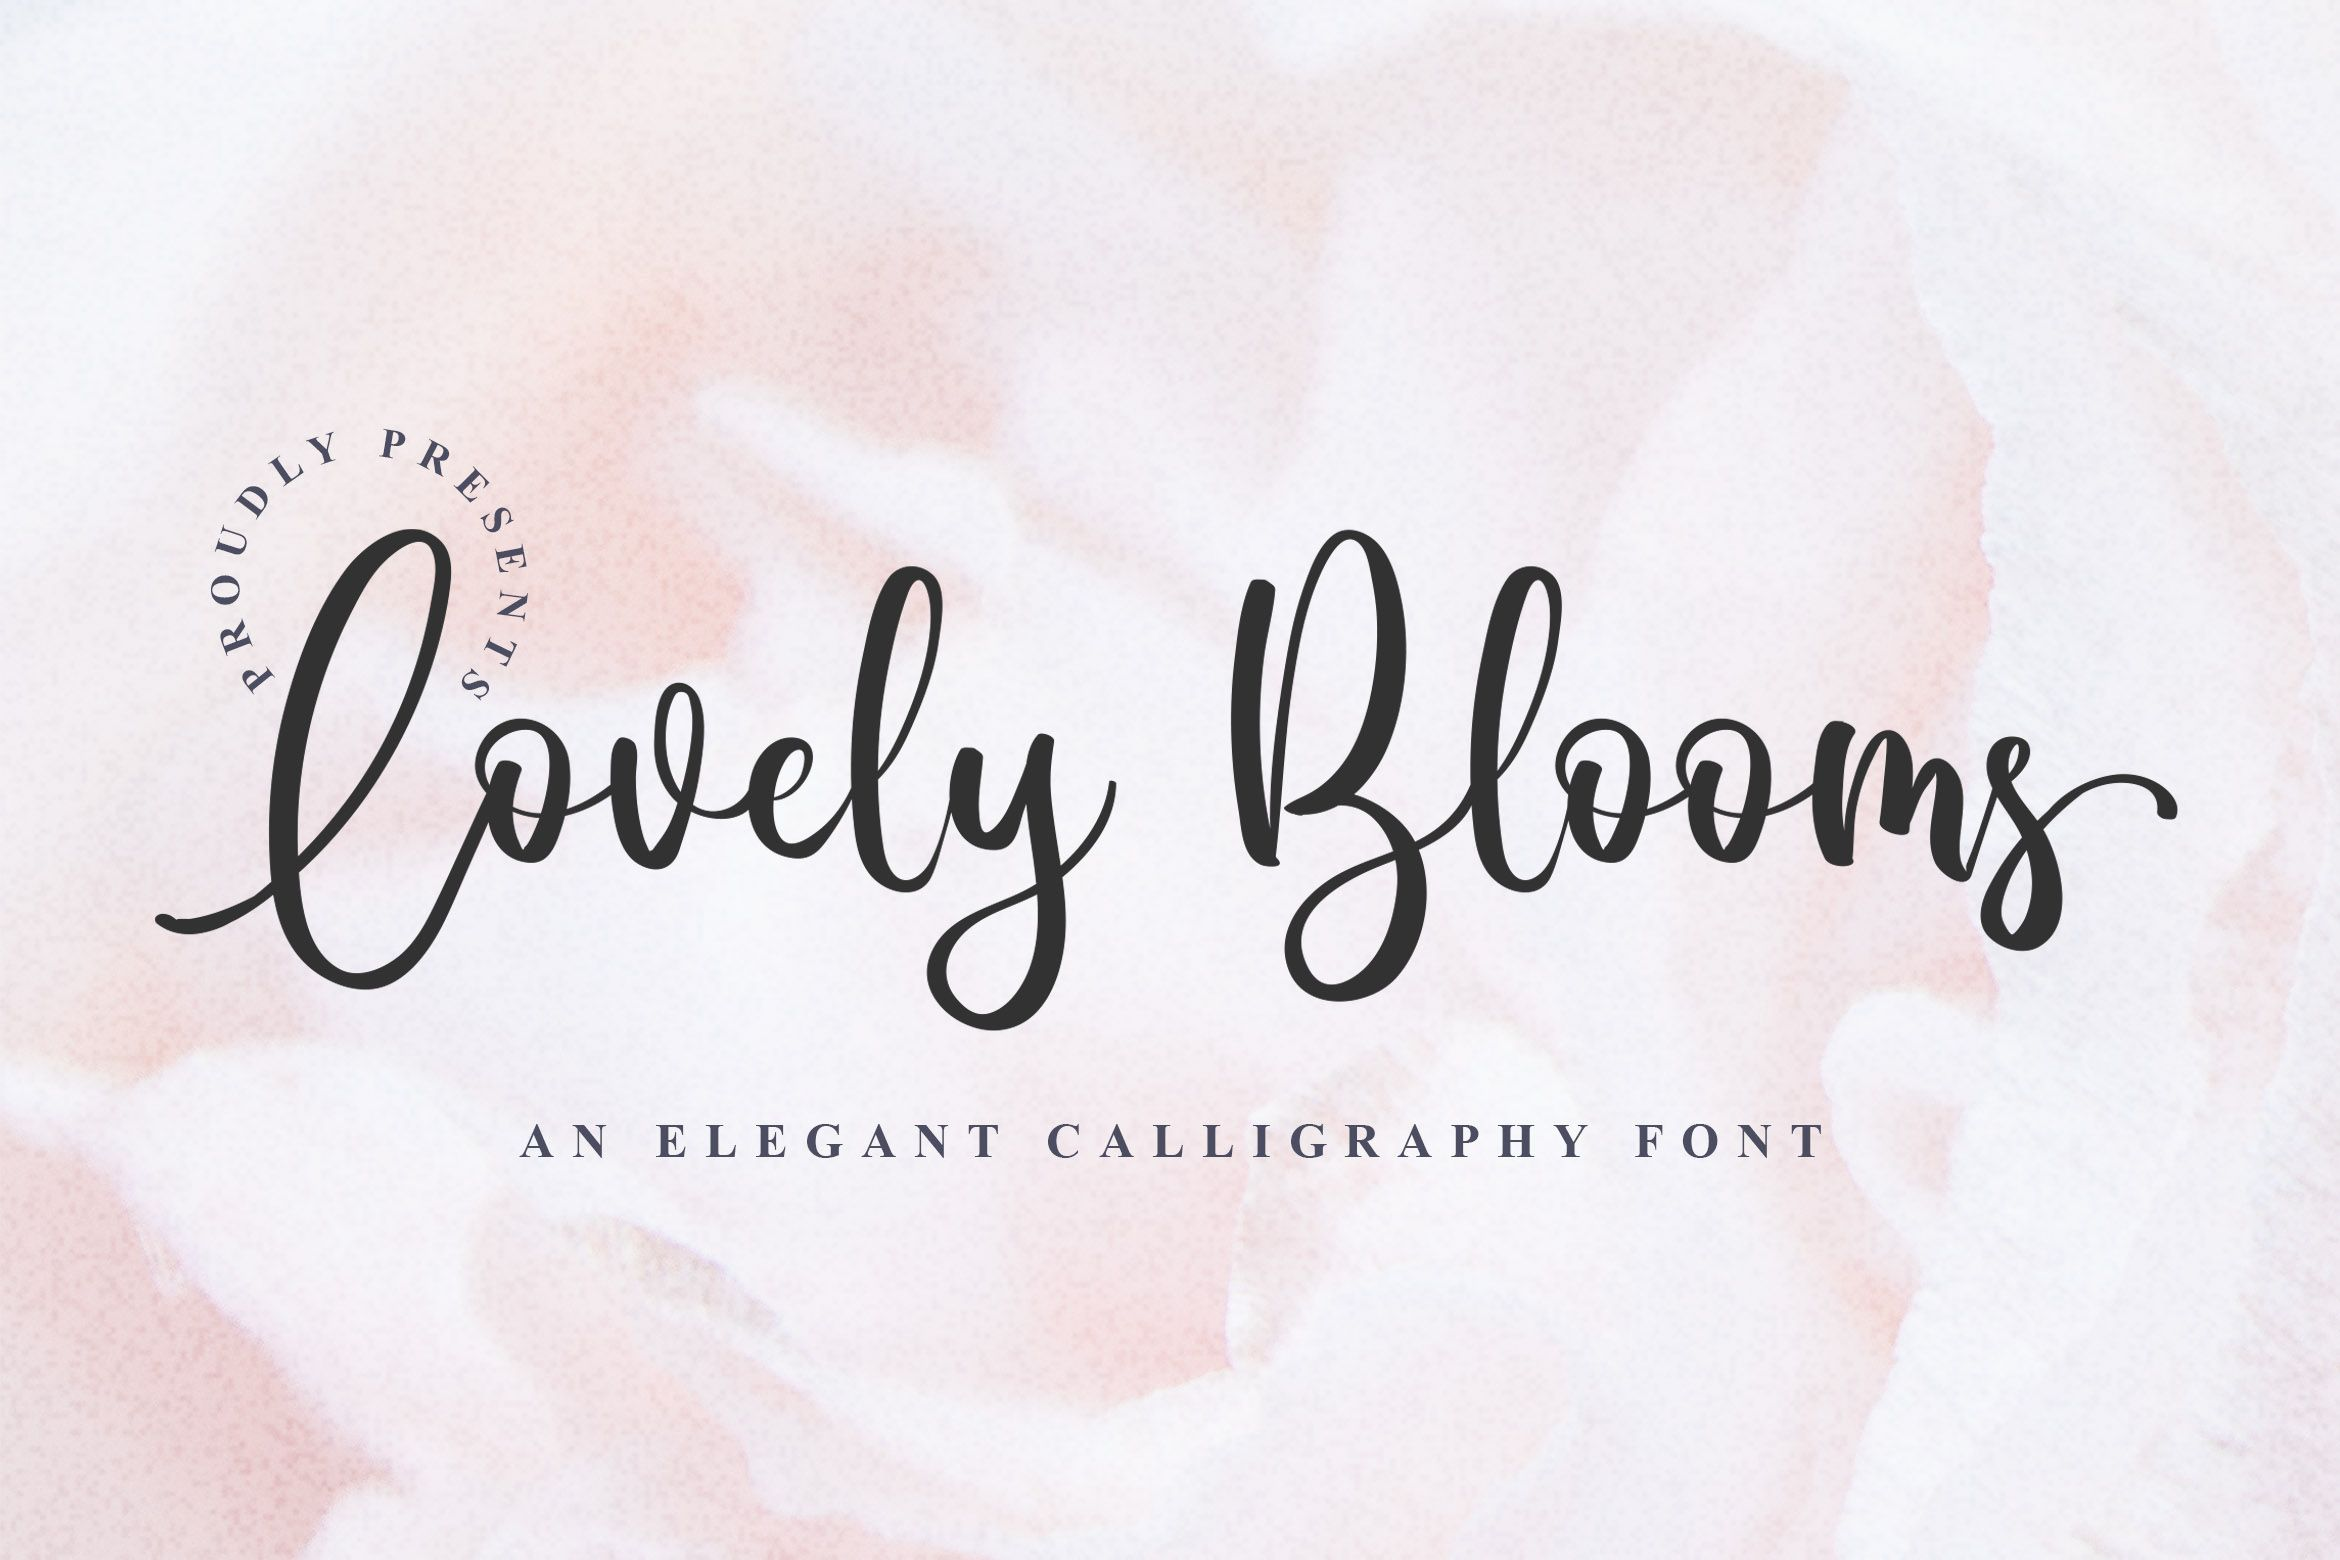 Download Lovely Blooms (Font) by Blankids Studio di 2020